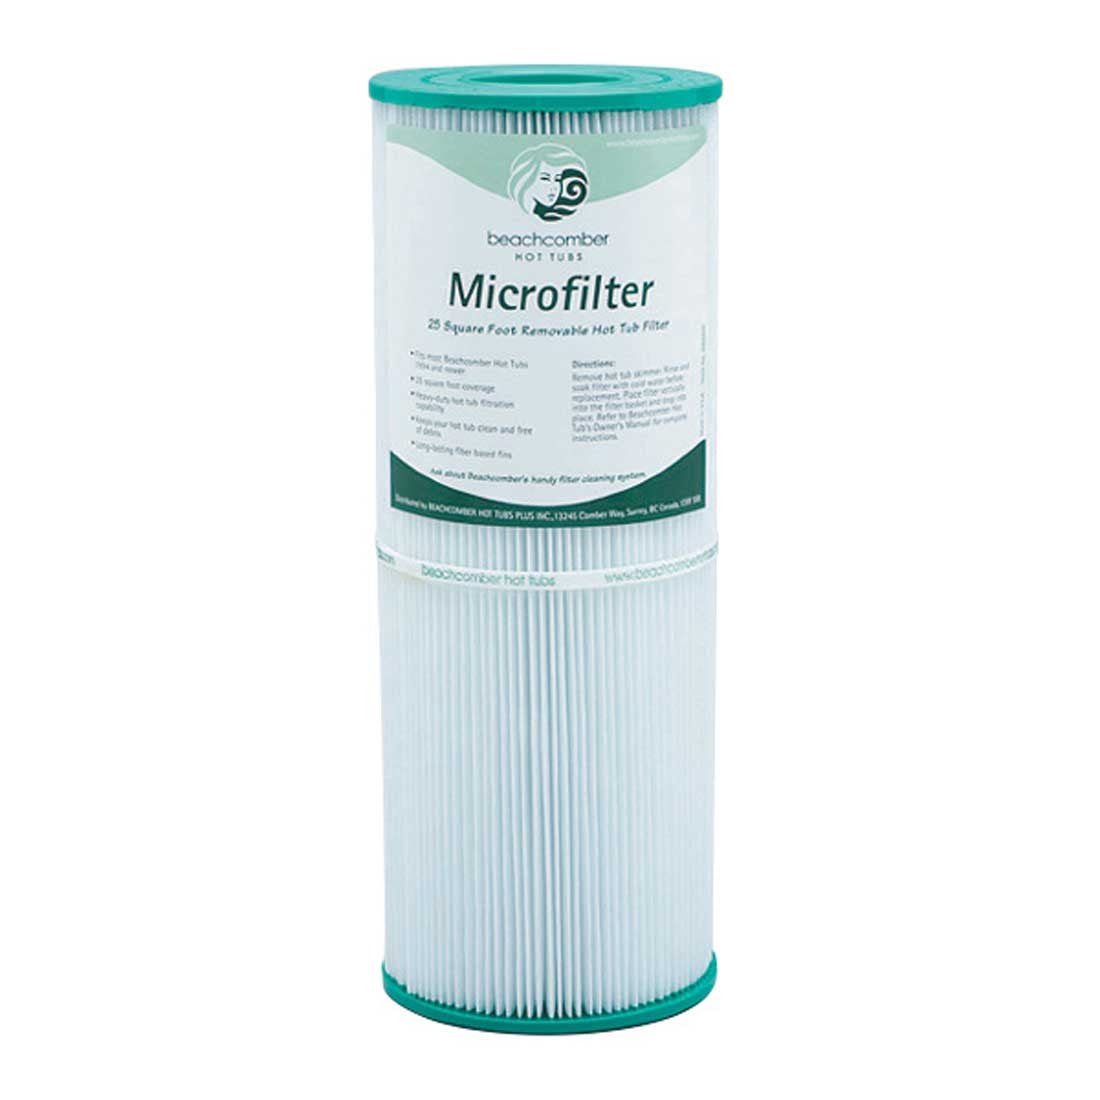 25 Sq/Ft Microfilter Cartridge